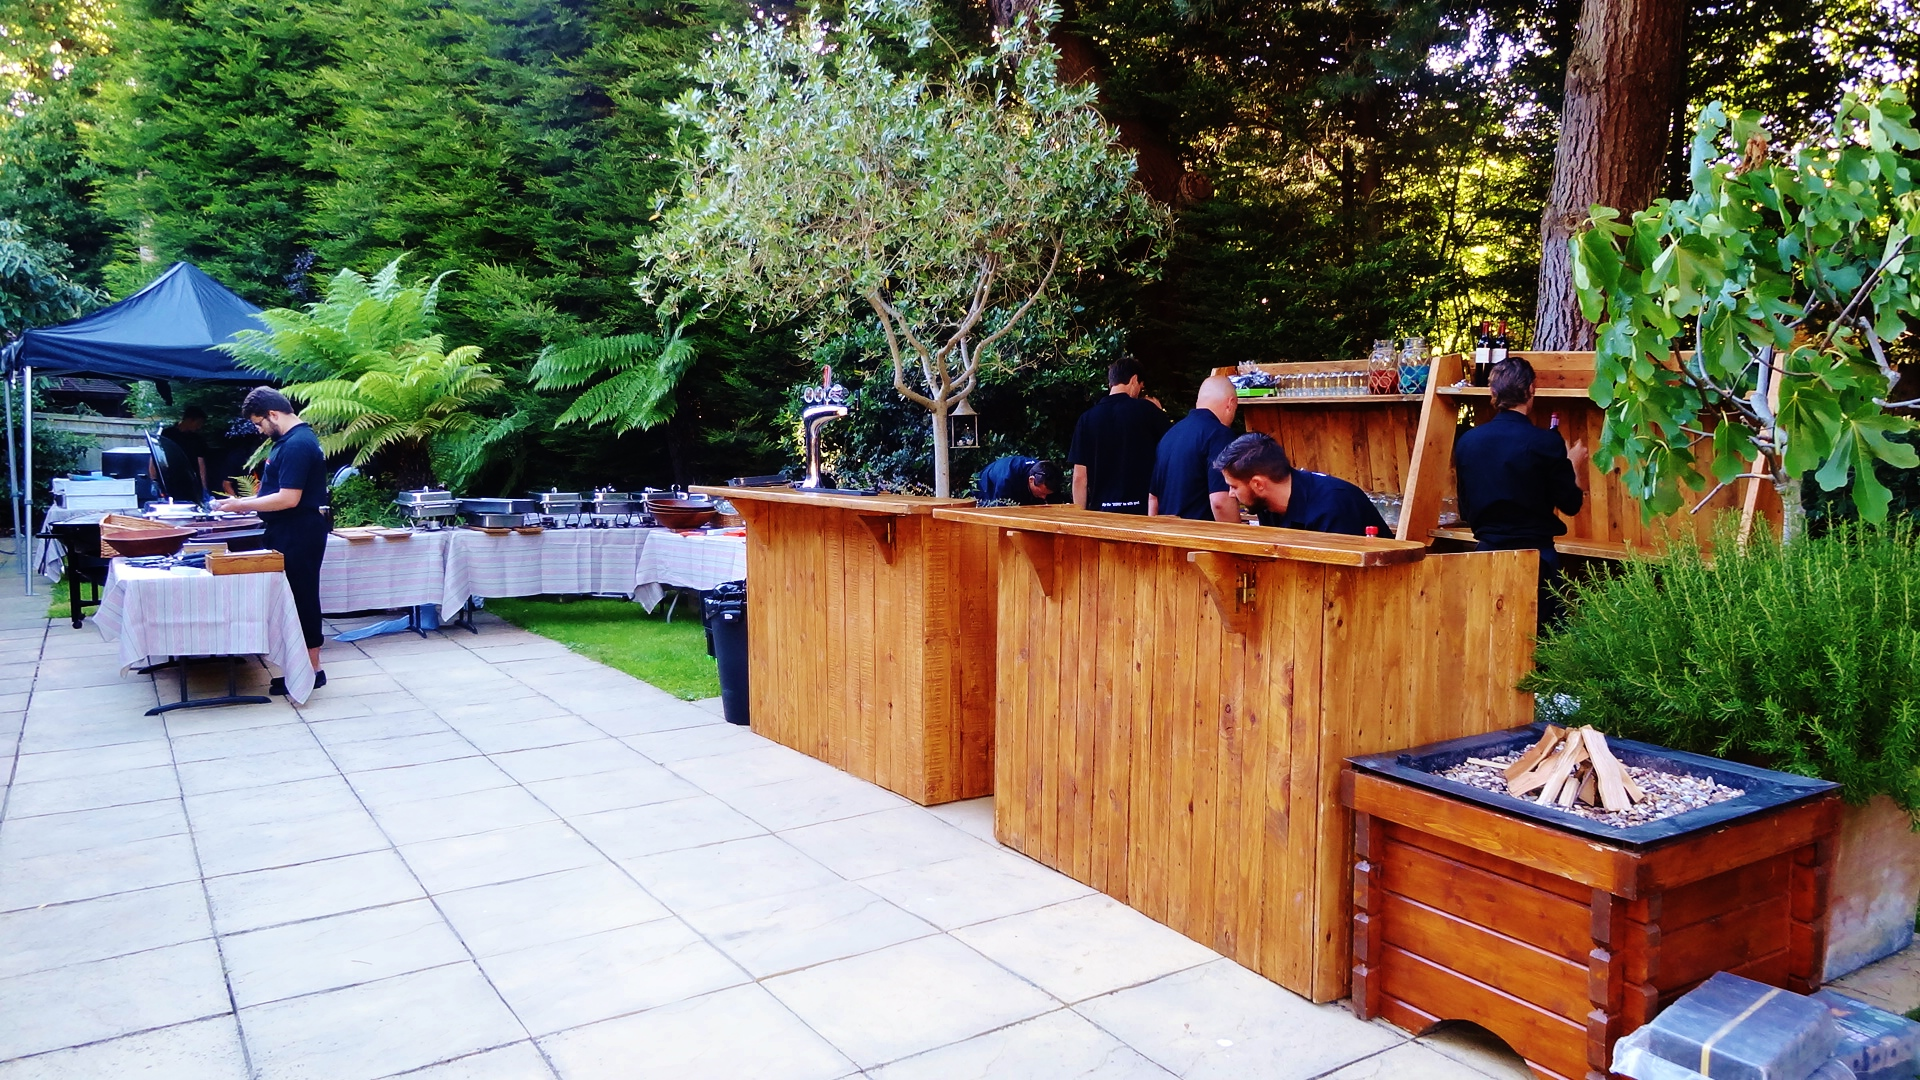 You know we do Mobile Bars as well...right!? - Image 1